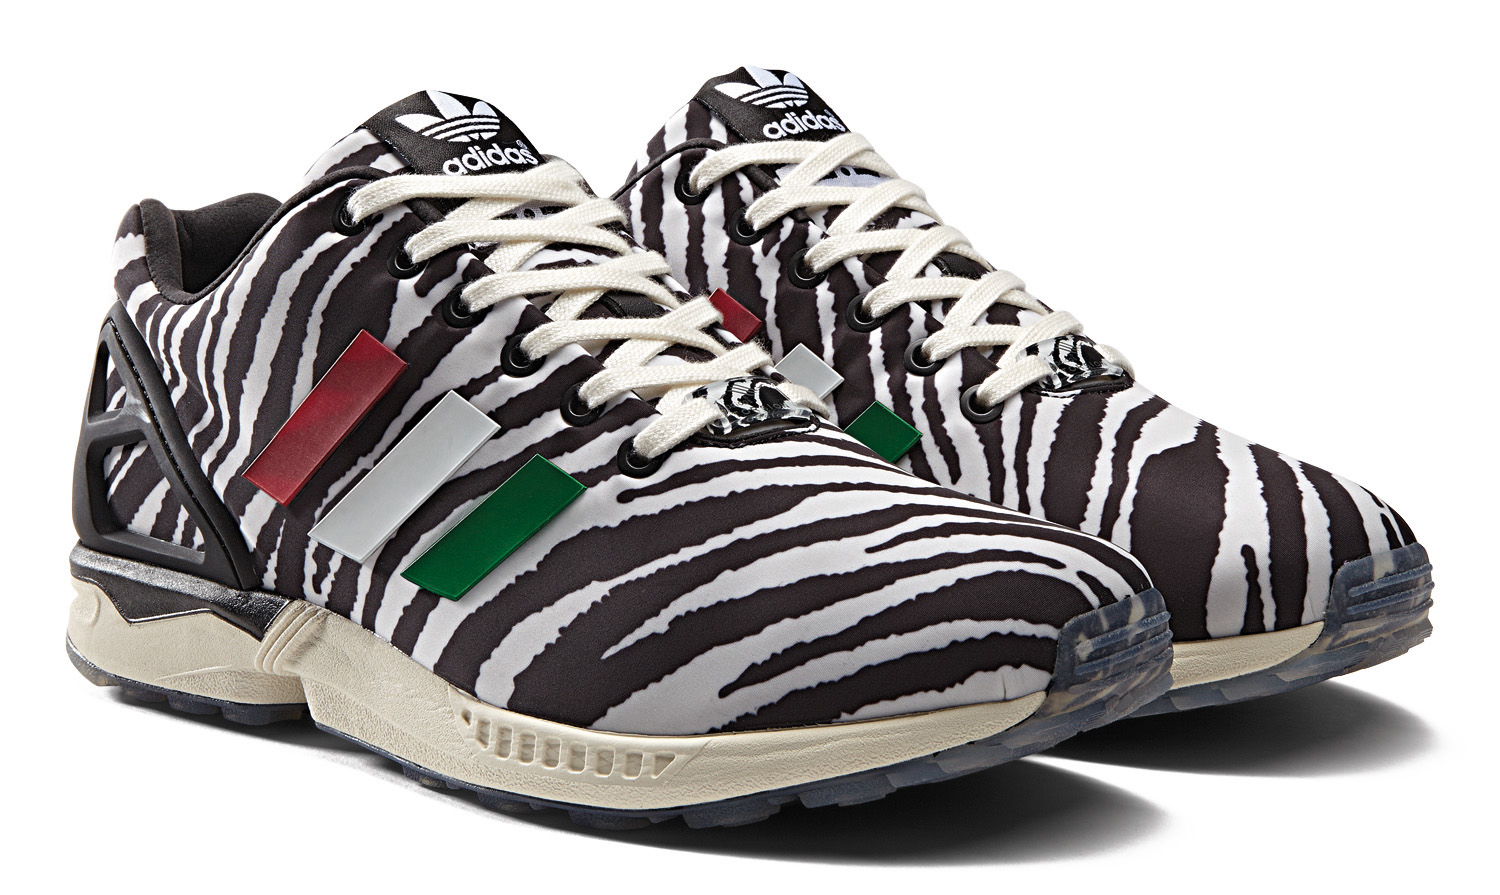 adidas zx flux x italia independent animal